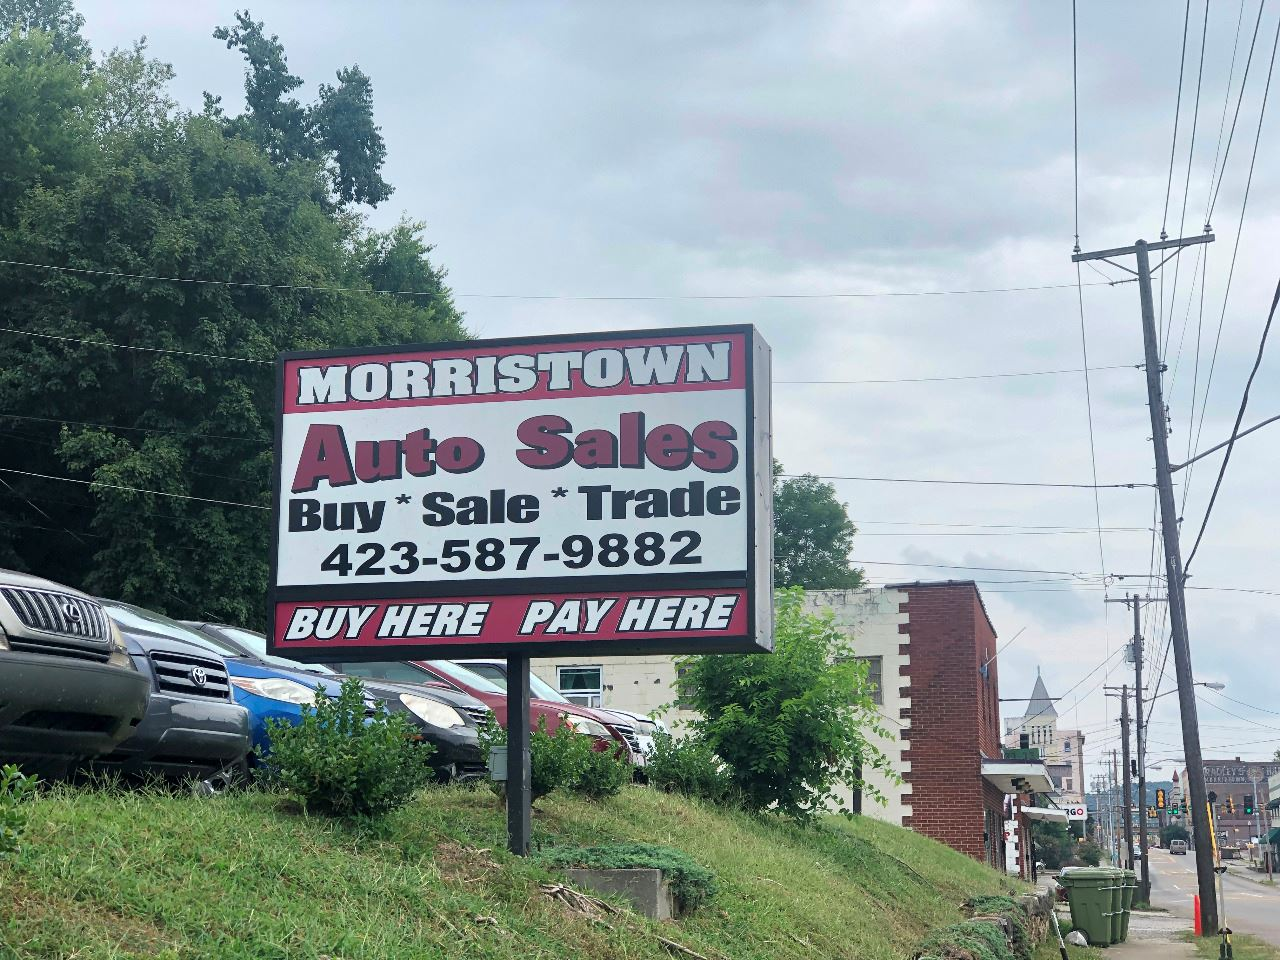 Morristown Auto Sales